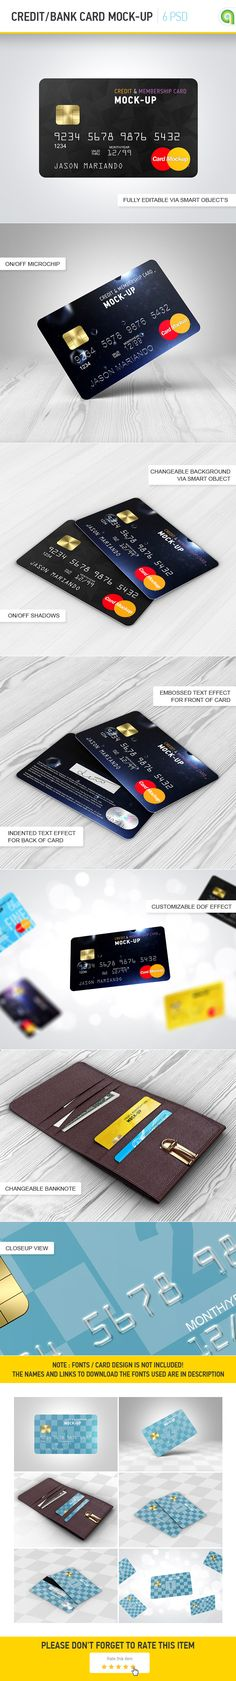 A particularly useful Bank card mock up that lets you put your designs on the credit card. This mockup useful for previewing bank card, credit card and bonus cards design.  Learn more about the benefits of this Credit / Bank Card Mockup on graphicriver.net